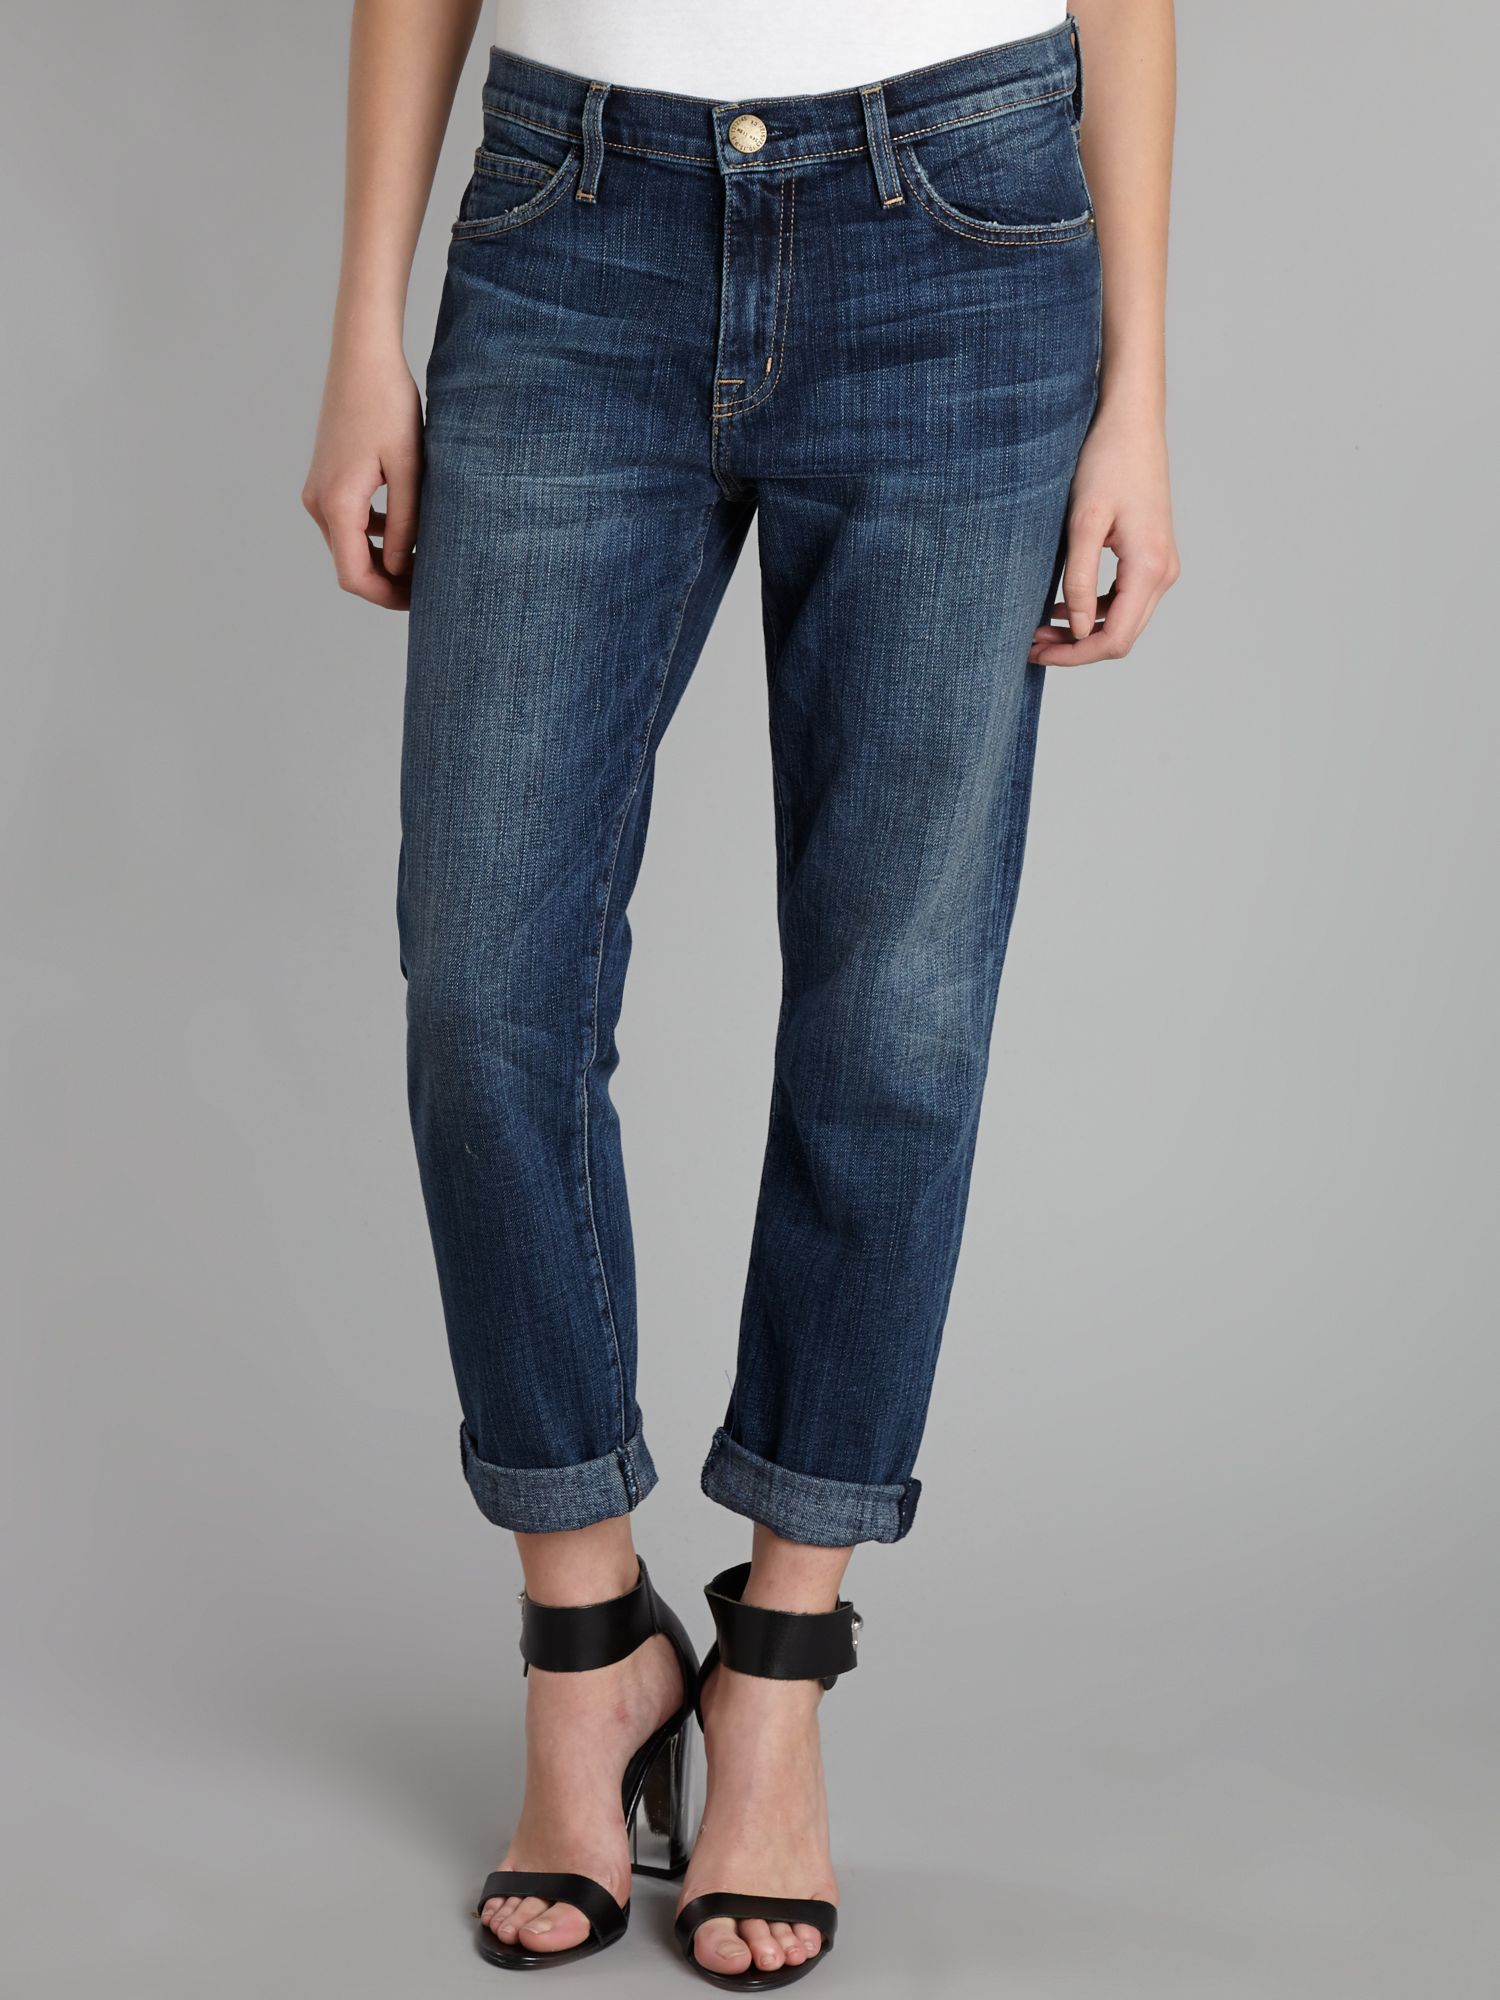 The Fling boyfriend jeans in Loved